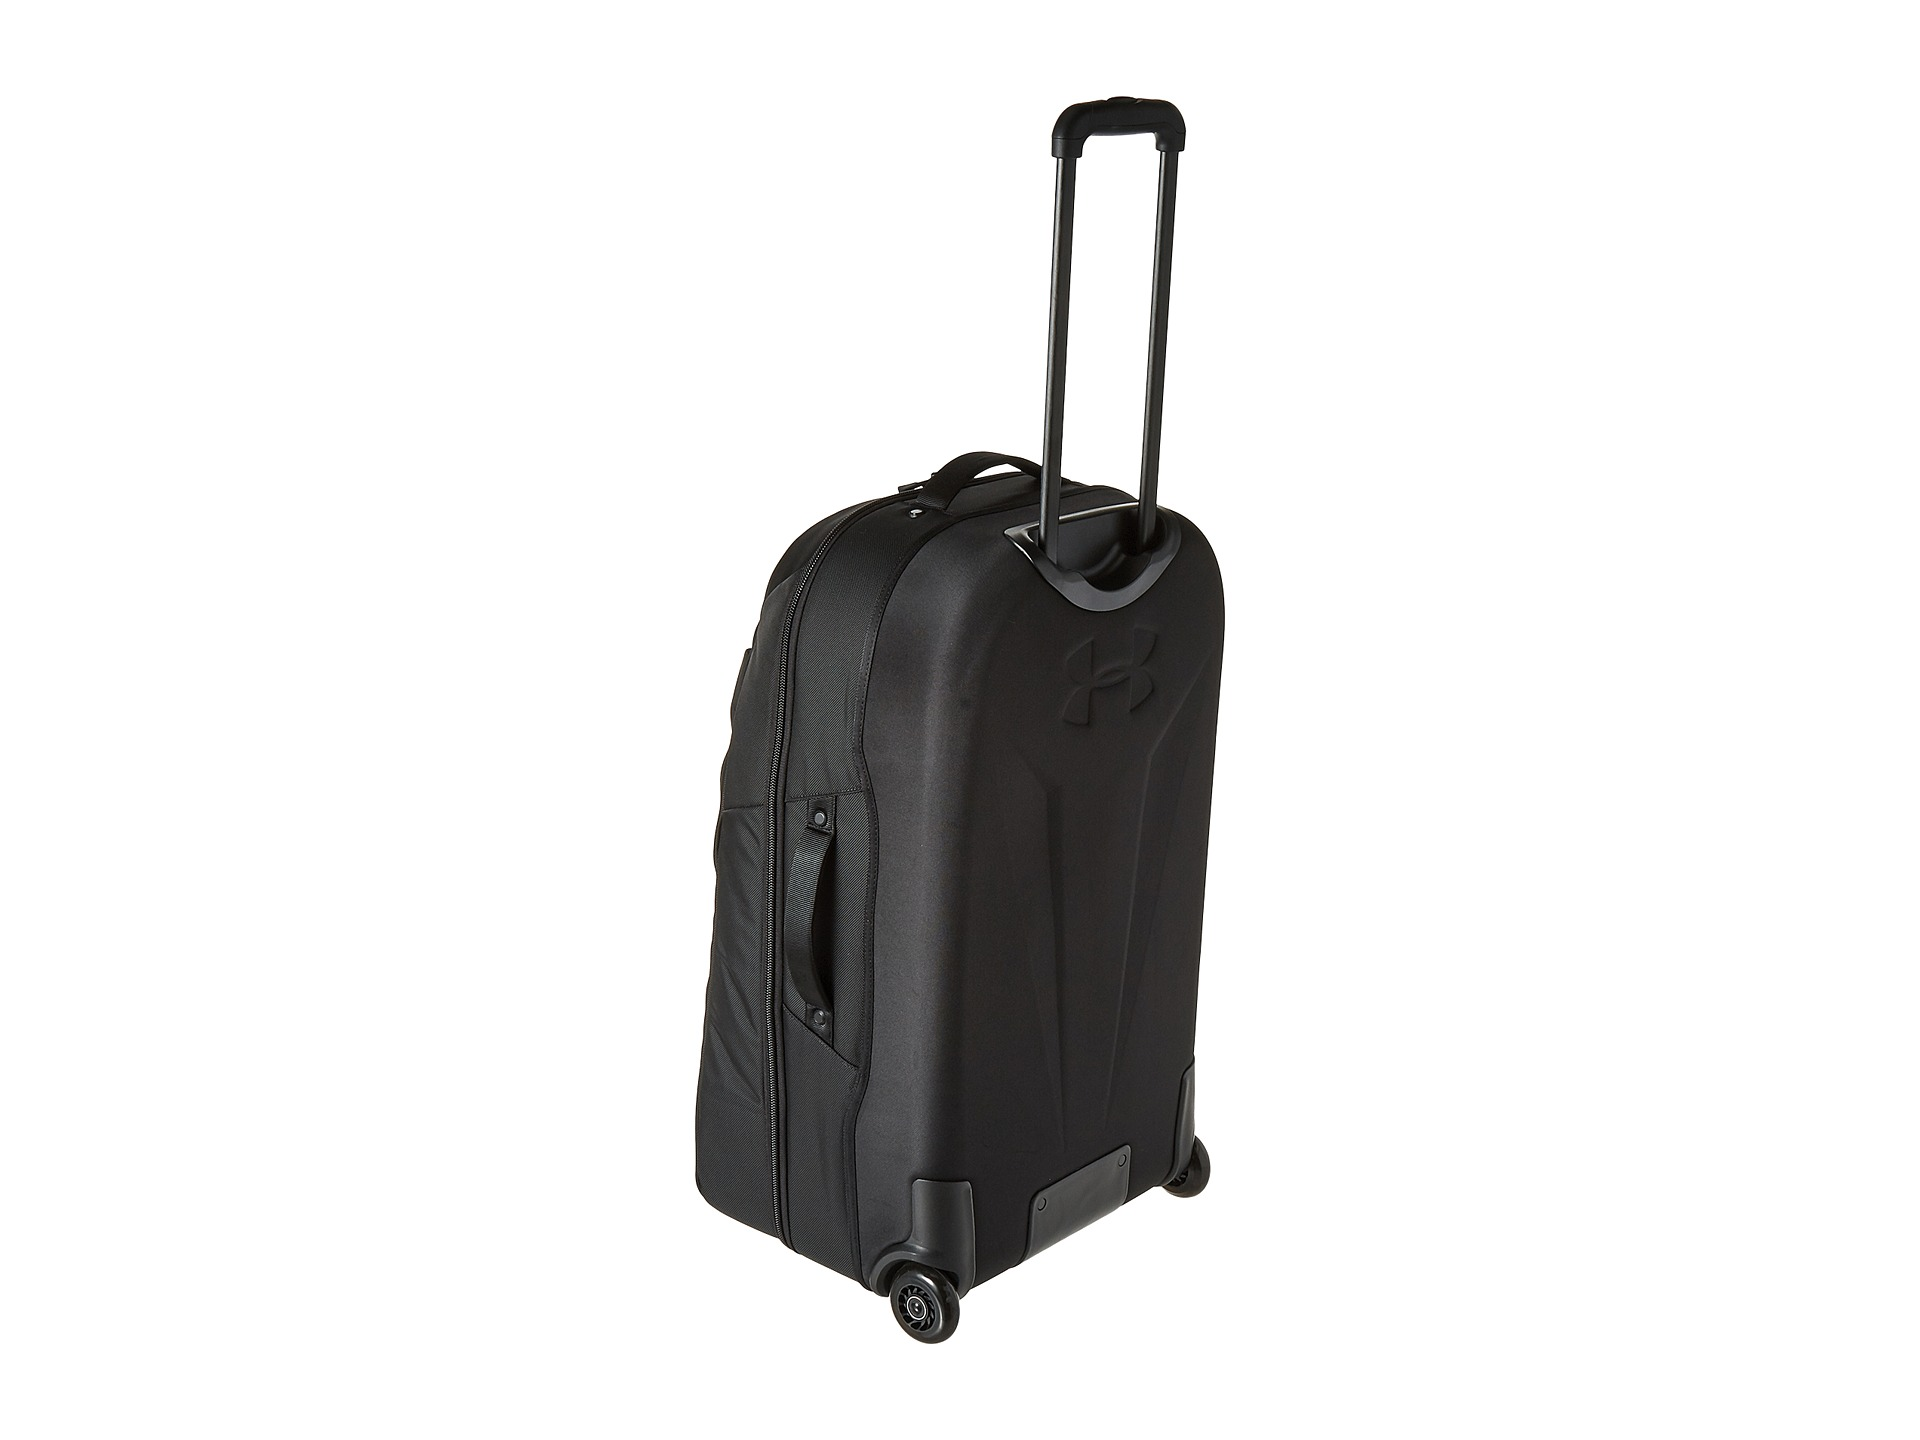 Buy under armour luggage with wheels   OFF51% Discounted 0fe0c00e1b151